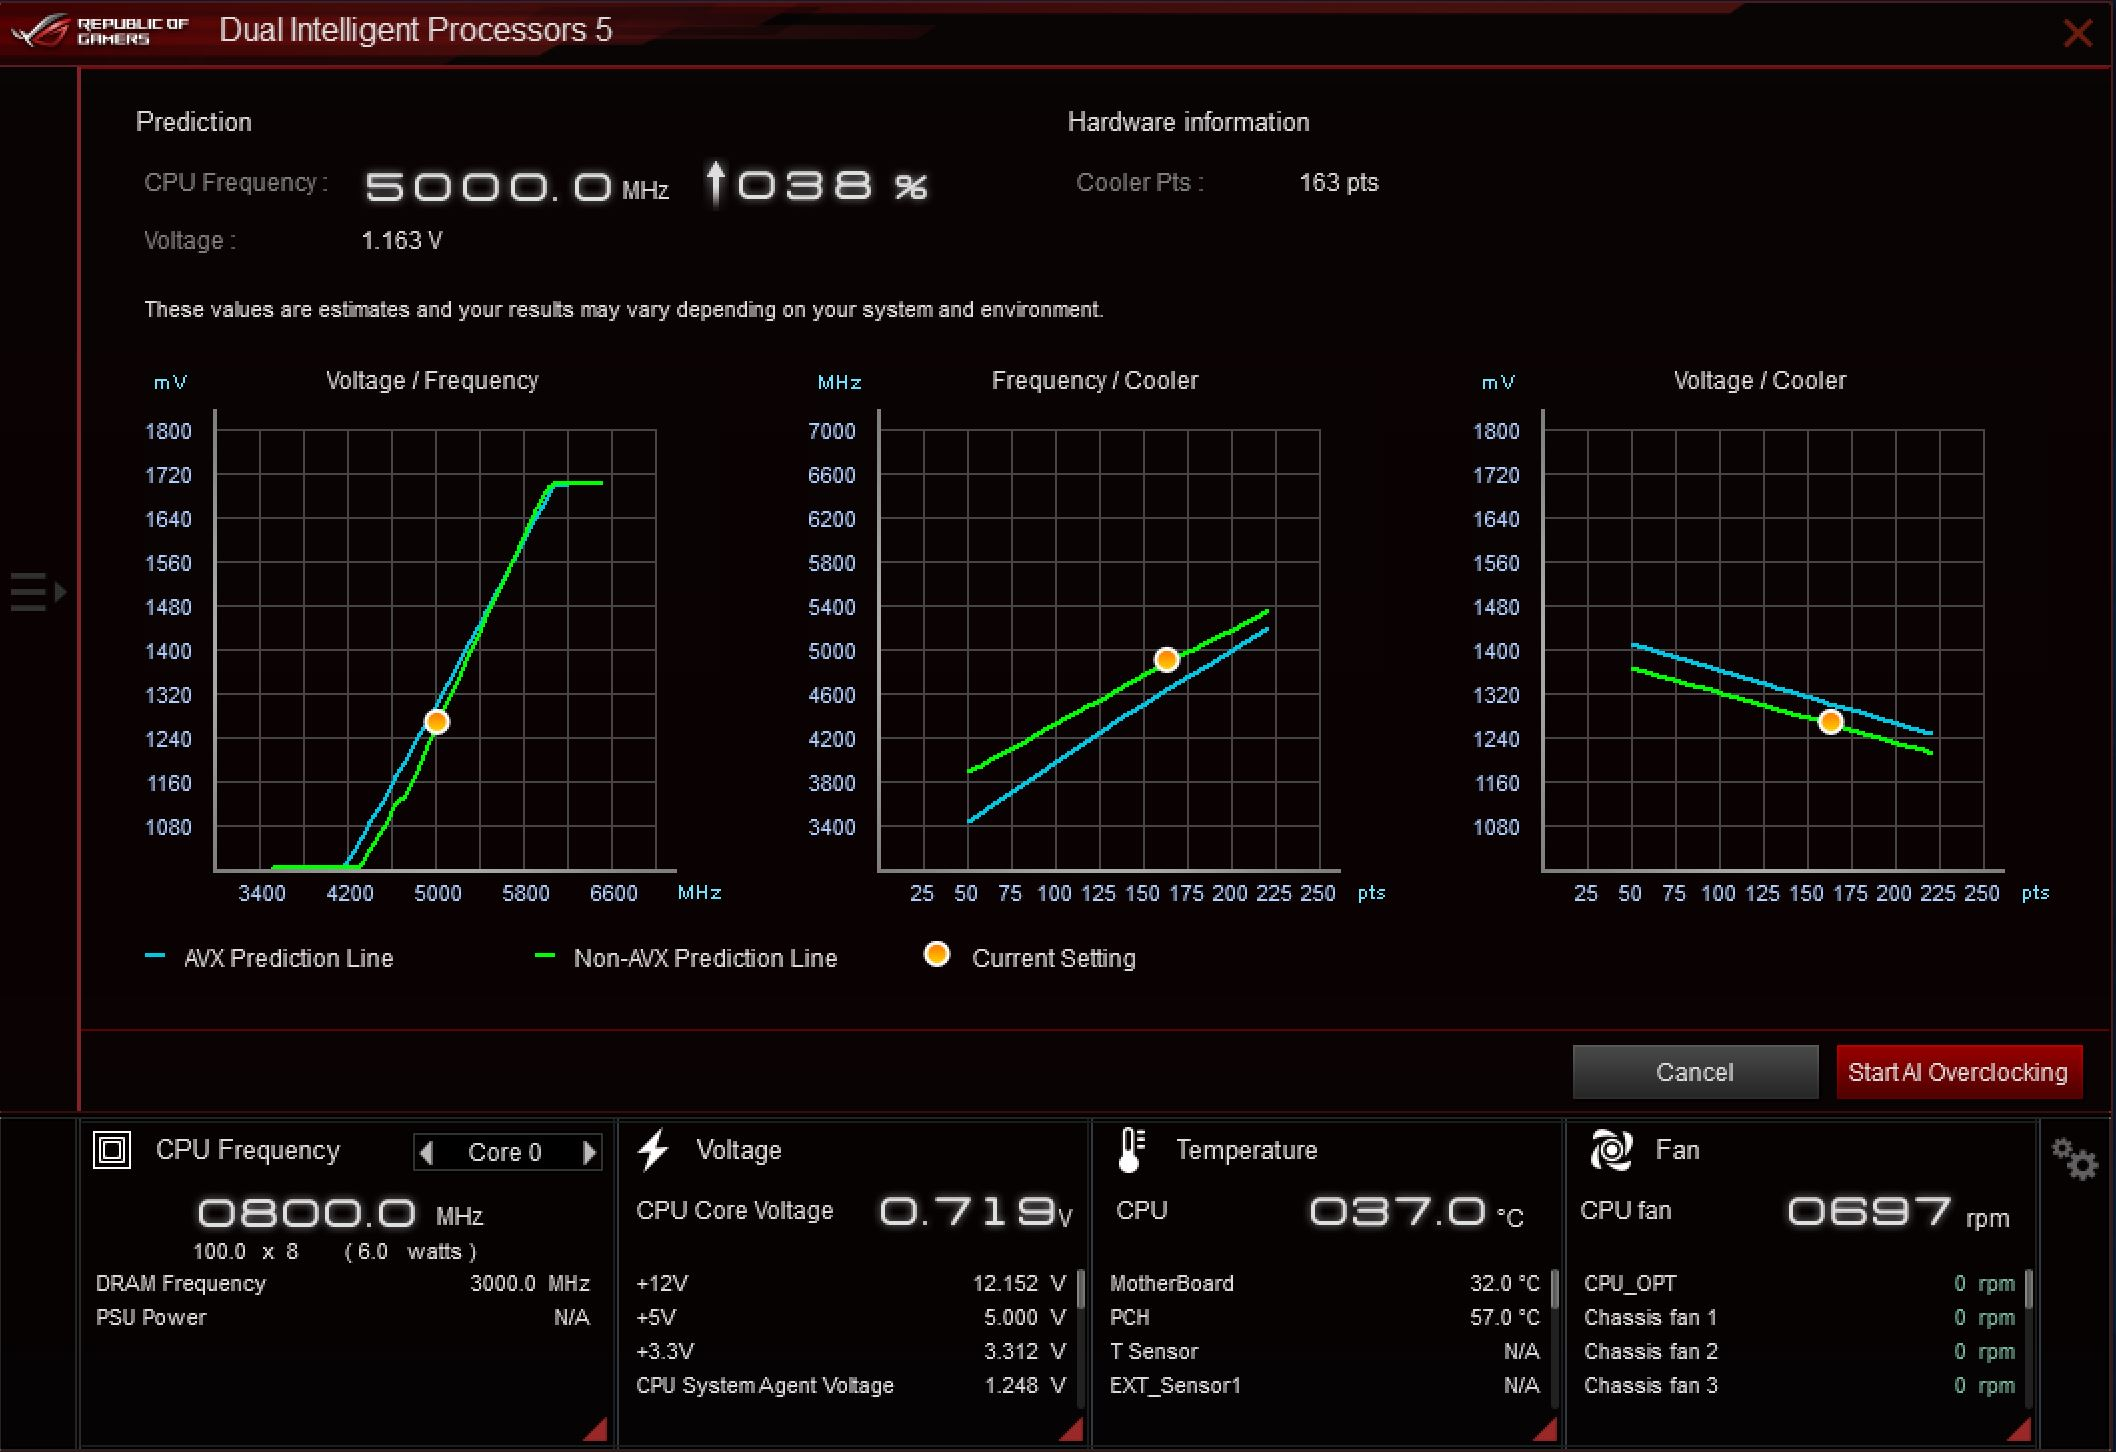 Asus ROG Maximus XI Hero (WI-FI) Review | bit-tech net